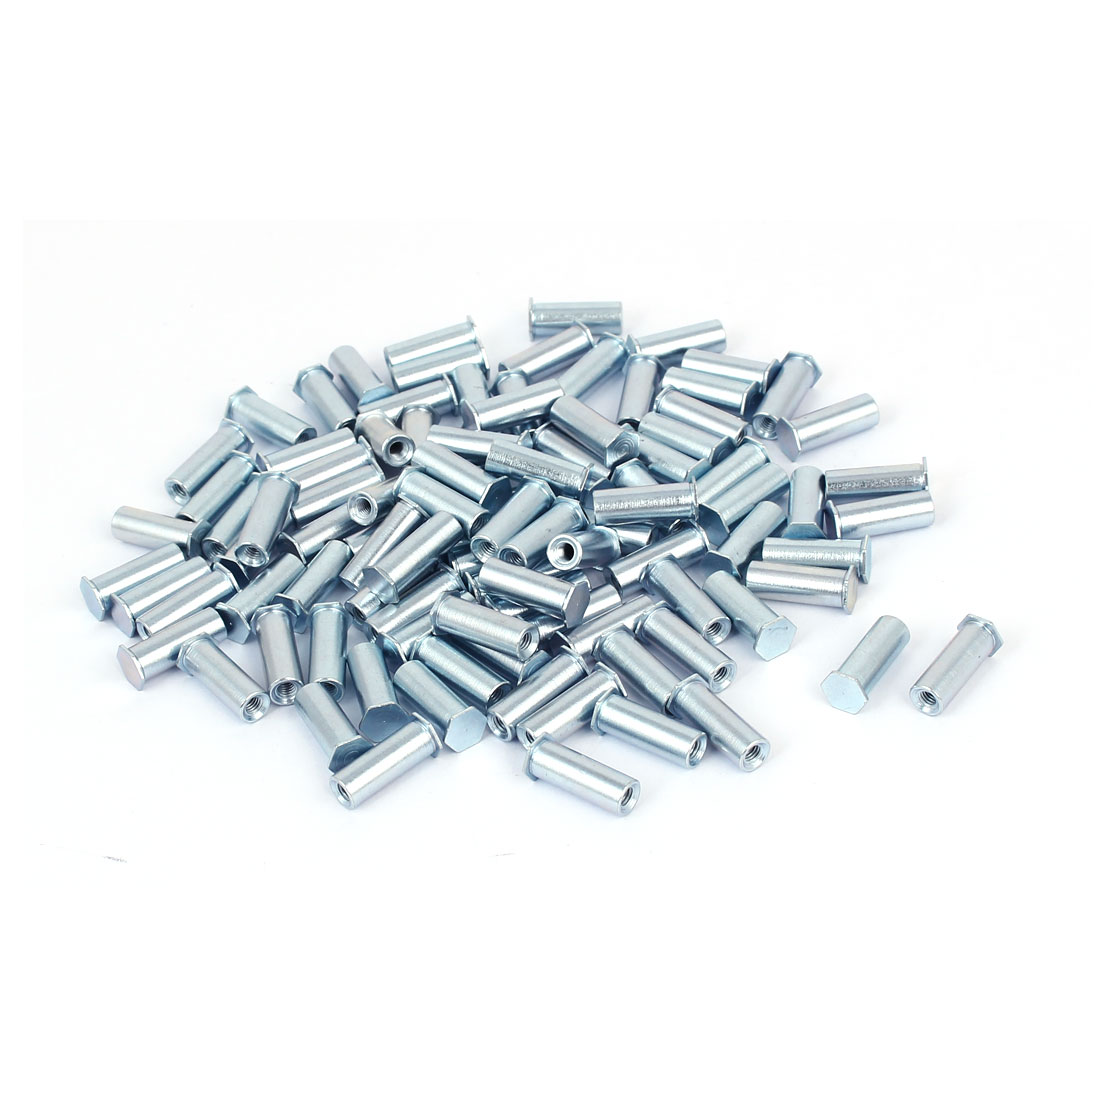 M3x16mm Hex Head Zinc Plated Carbon Steel Blind Self Clinching Standoff 100pcs